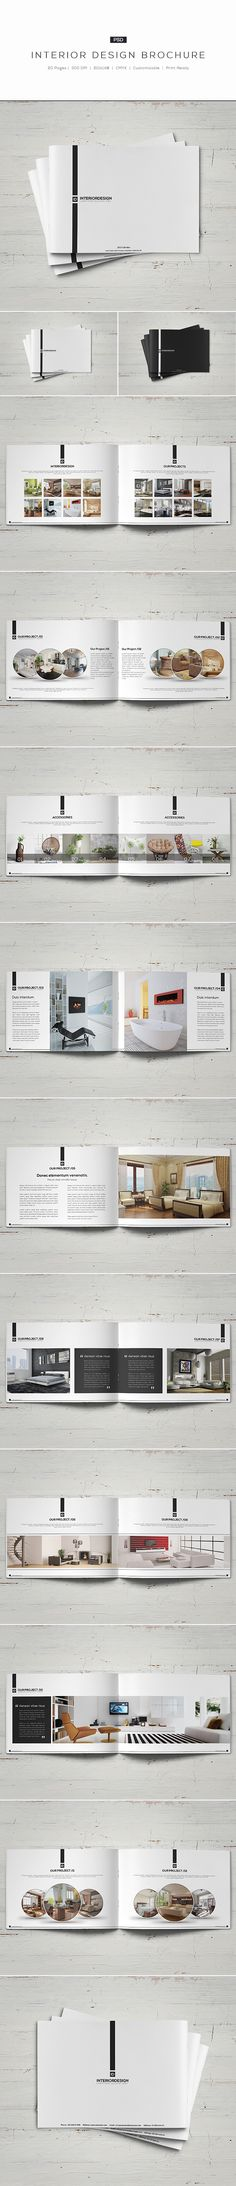 Interior Design Brochure on Behance